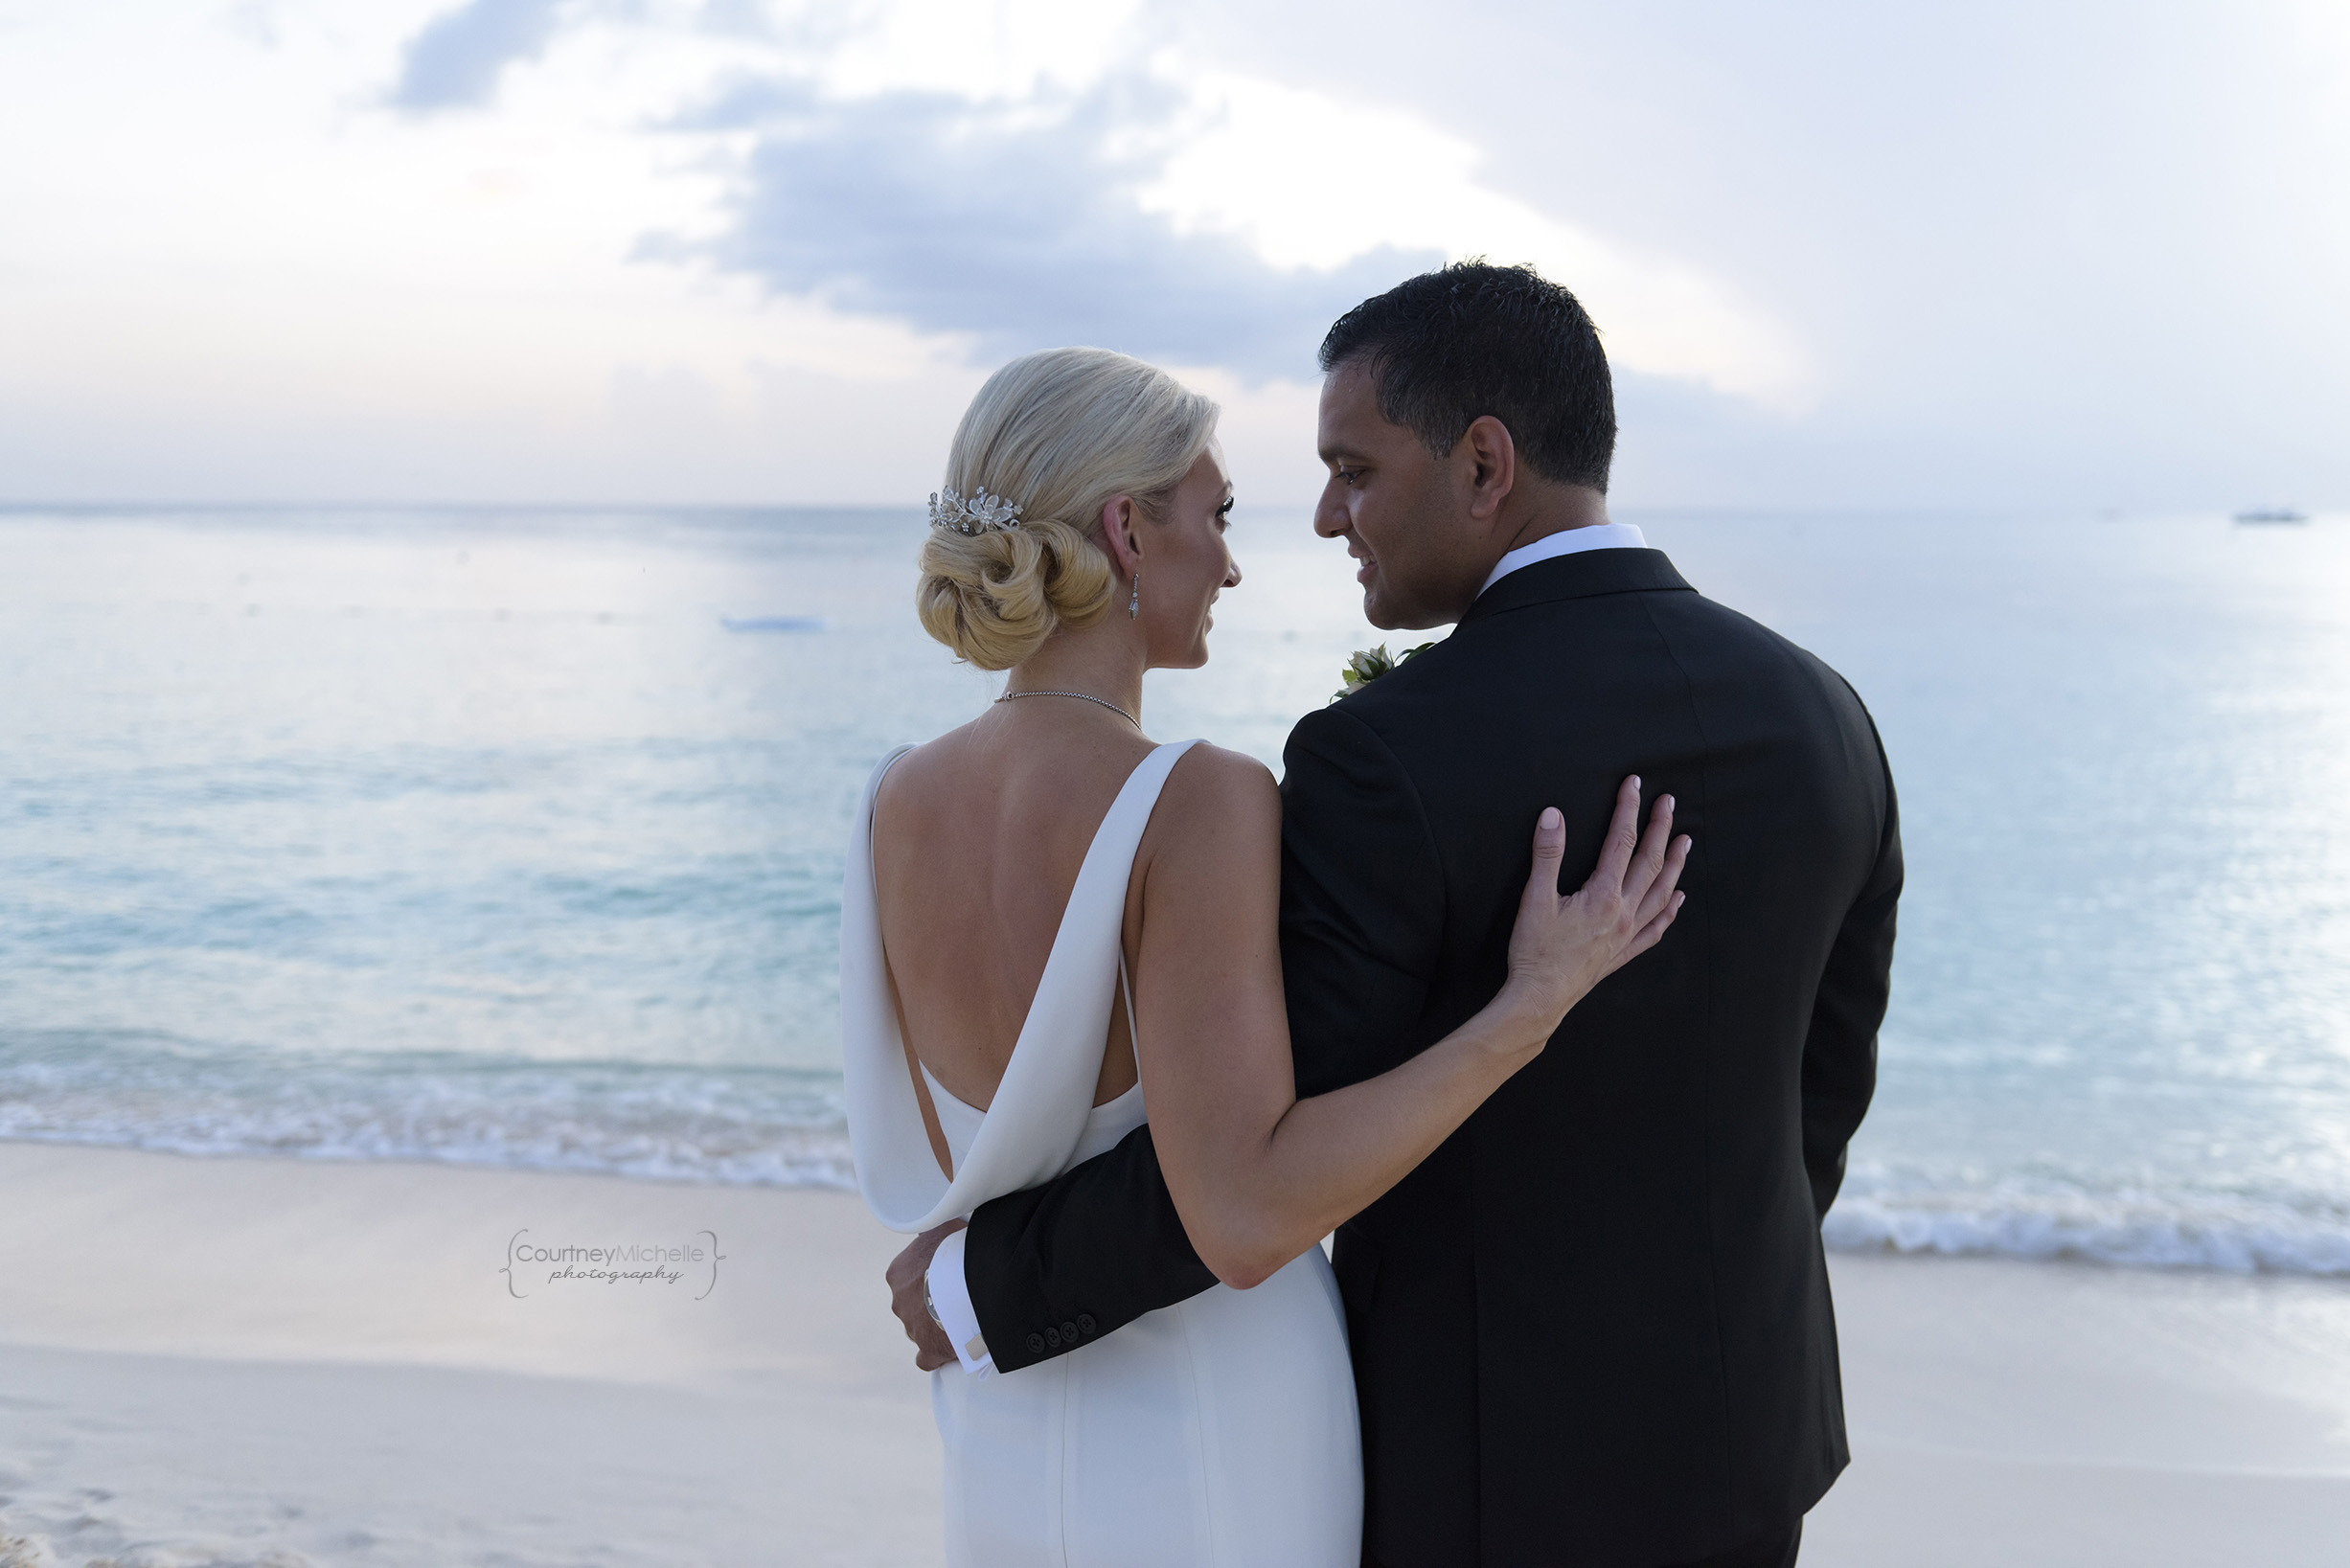 bride-and-groom-portrait-grand-cayman-beach-wedding-photography-by-courtney-laper©CopyrightCMP-LeaAnneRaj-8023.jpg